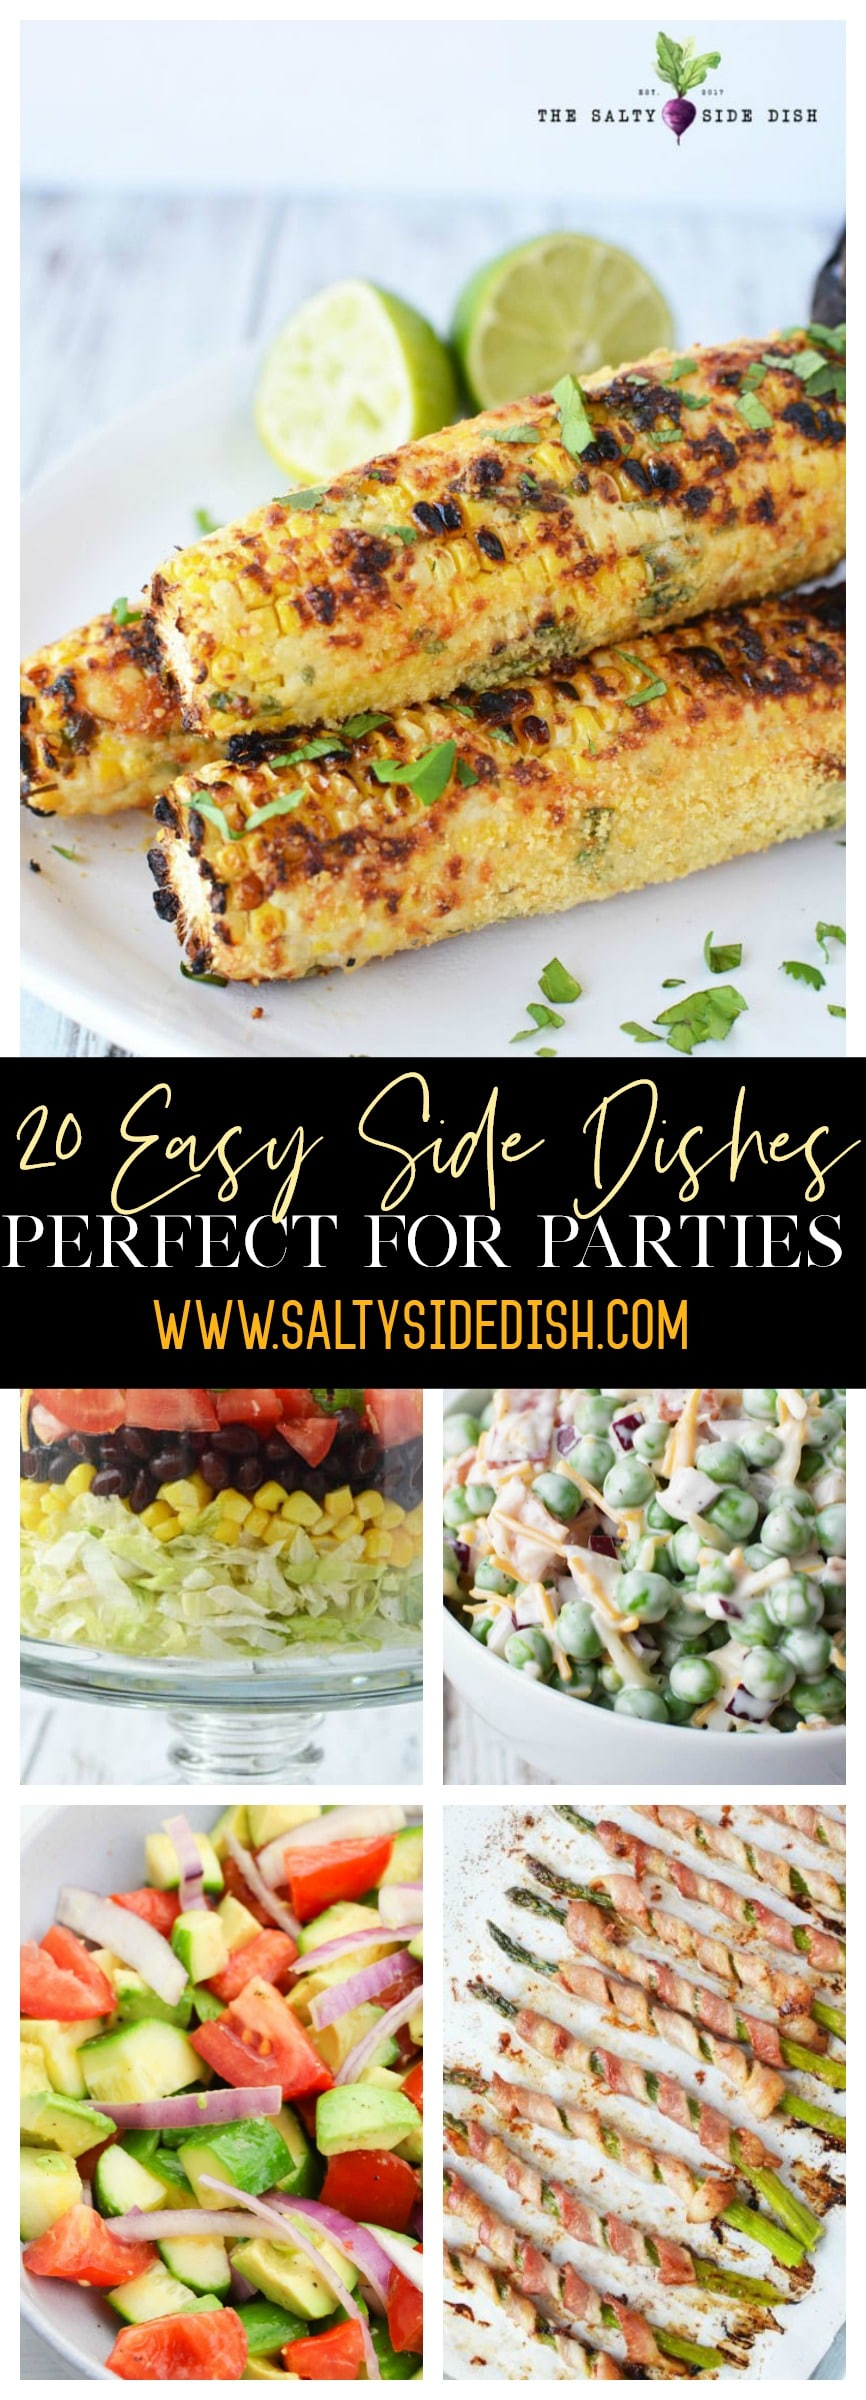 20 Easy Side Dishes Perfect for Parties, bbqs, or potlucks, get amazing hot and cold dishes you can whip up today and all year long #recipes #summer #salads #sidedishes